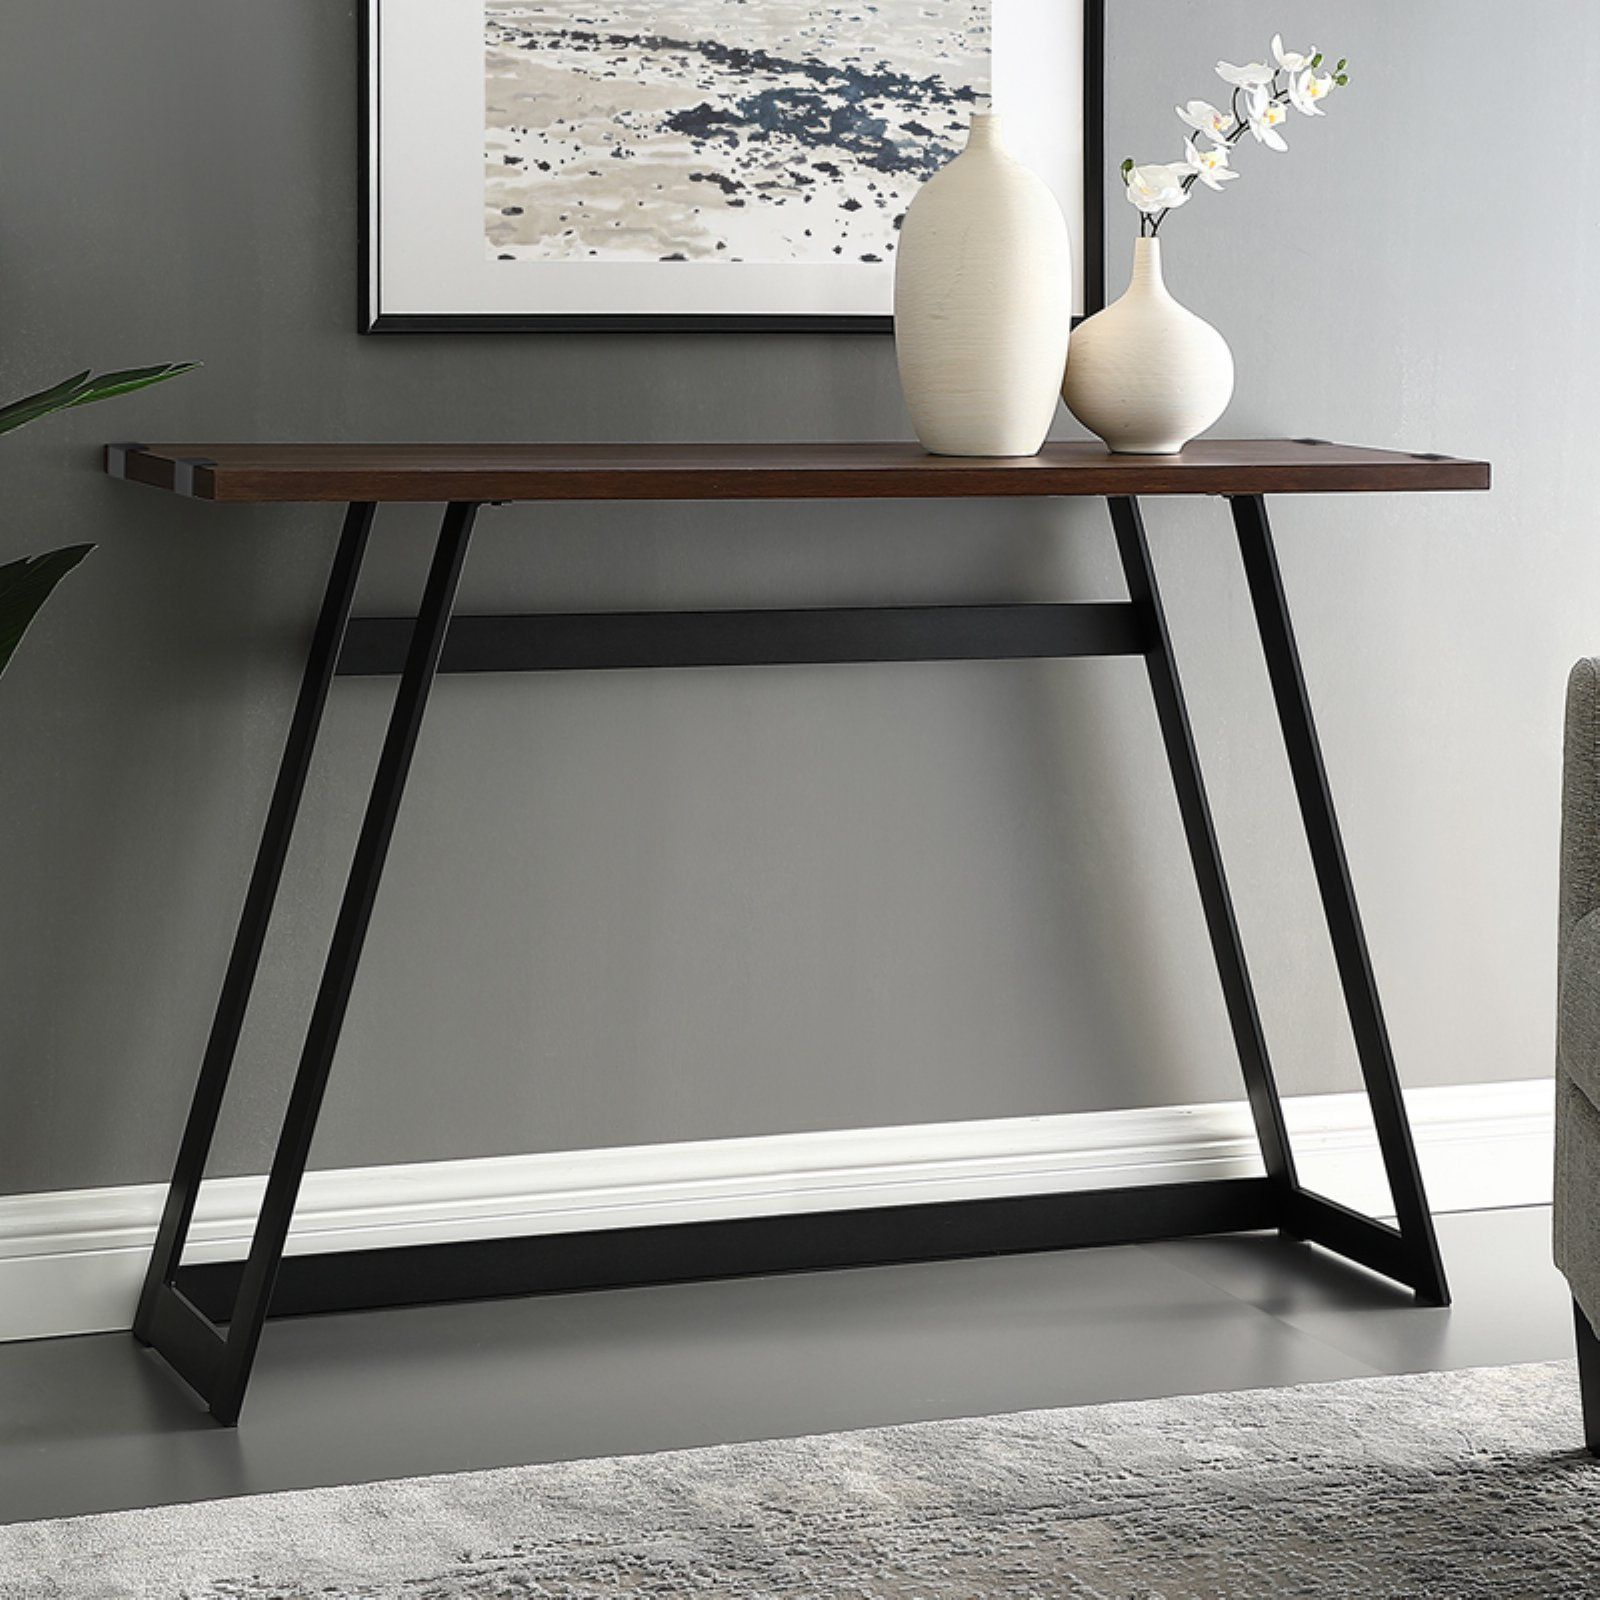 Manor Park Urban Industrial Console Table In 2020 Industrial Console Tables Console Table Table